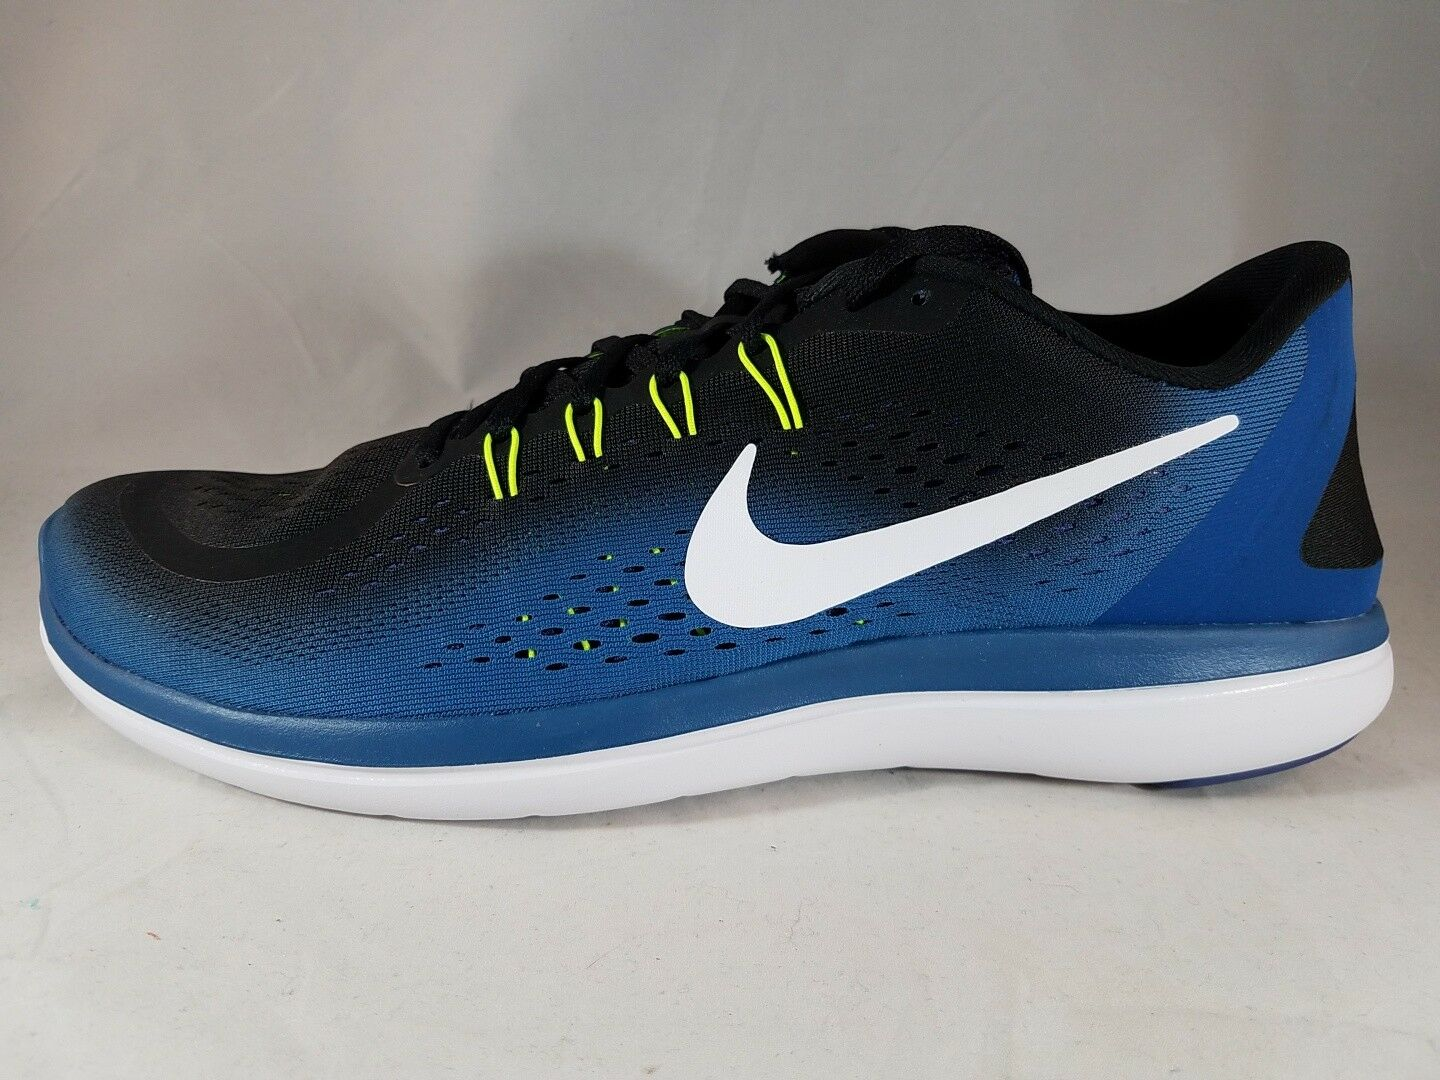 Nike Flex 2017 RN Men's Industrial bluee Running shoes 898457 898457 898457 003 Size 15 eb55eb